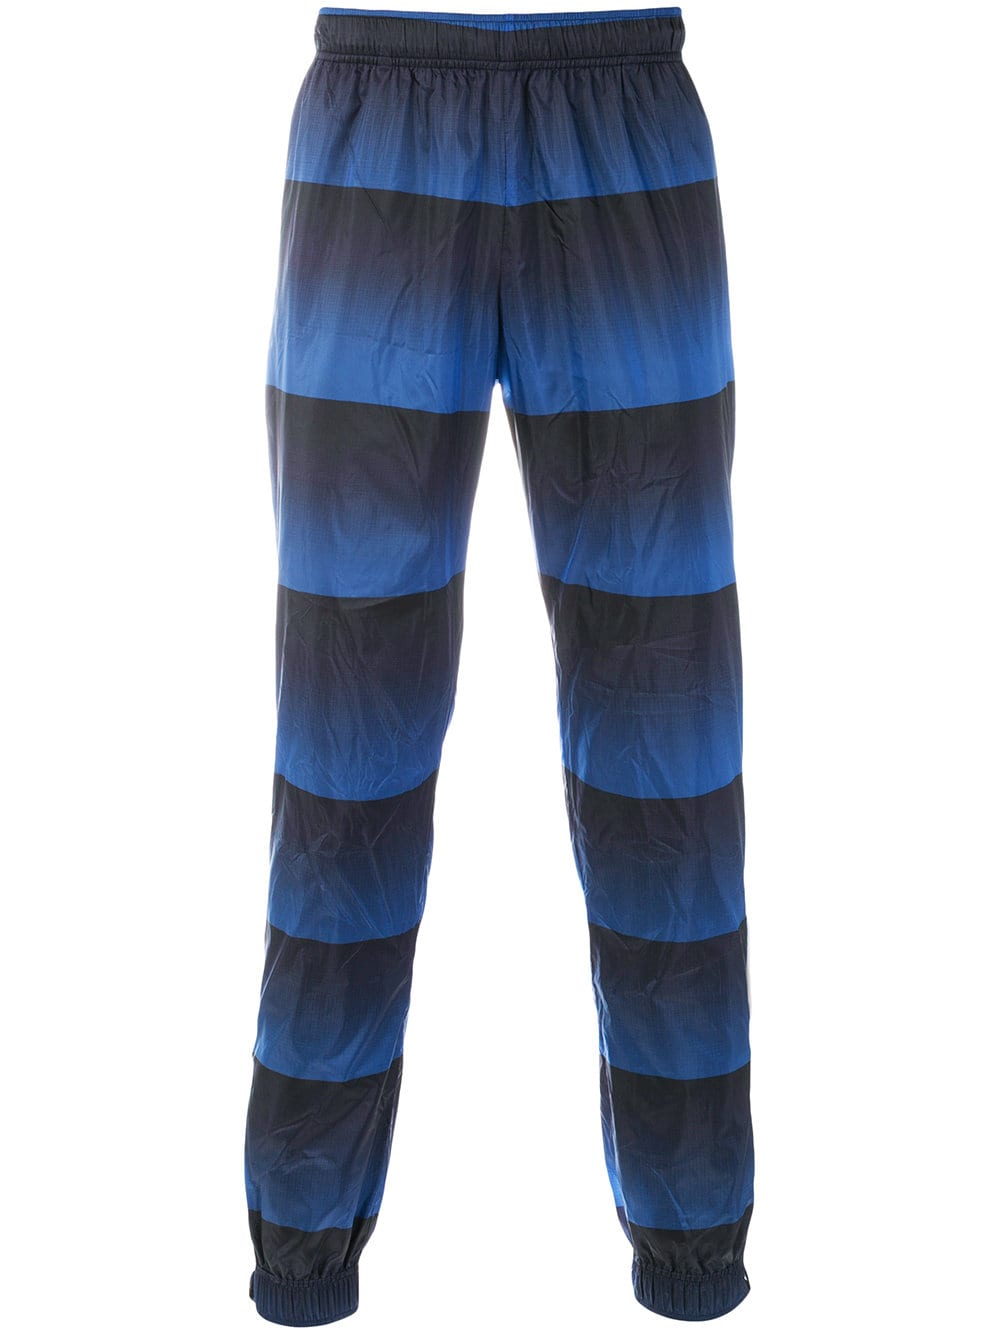 061434561a84 REEBOK X COTTWEILER - FROSTED TRACK PANTS – Temporary Showroom